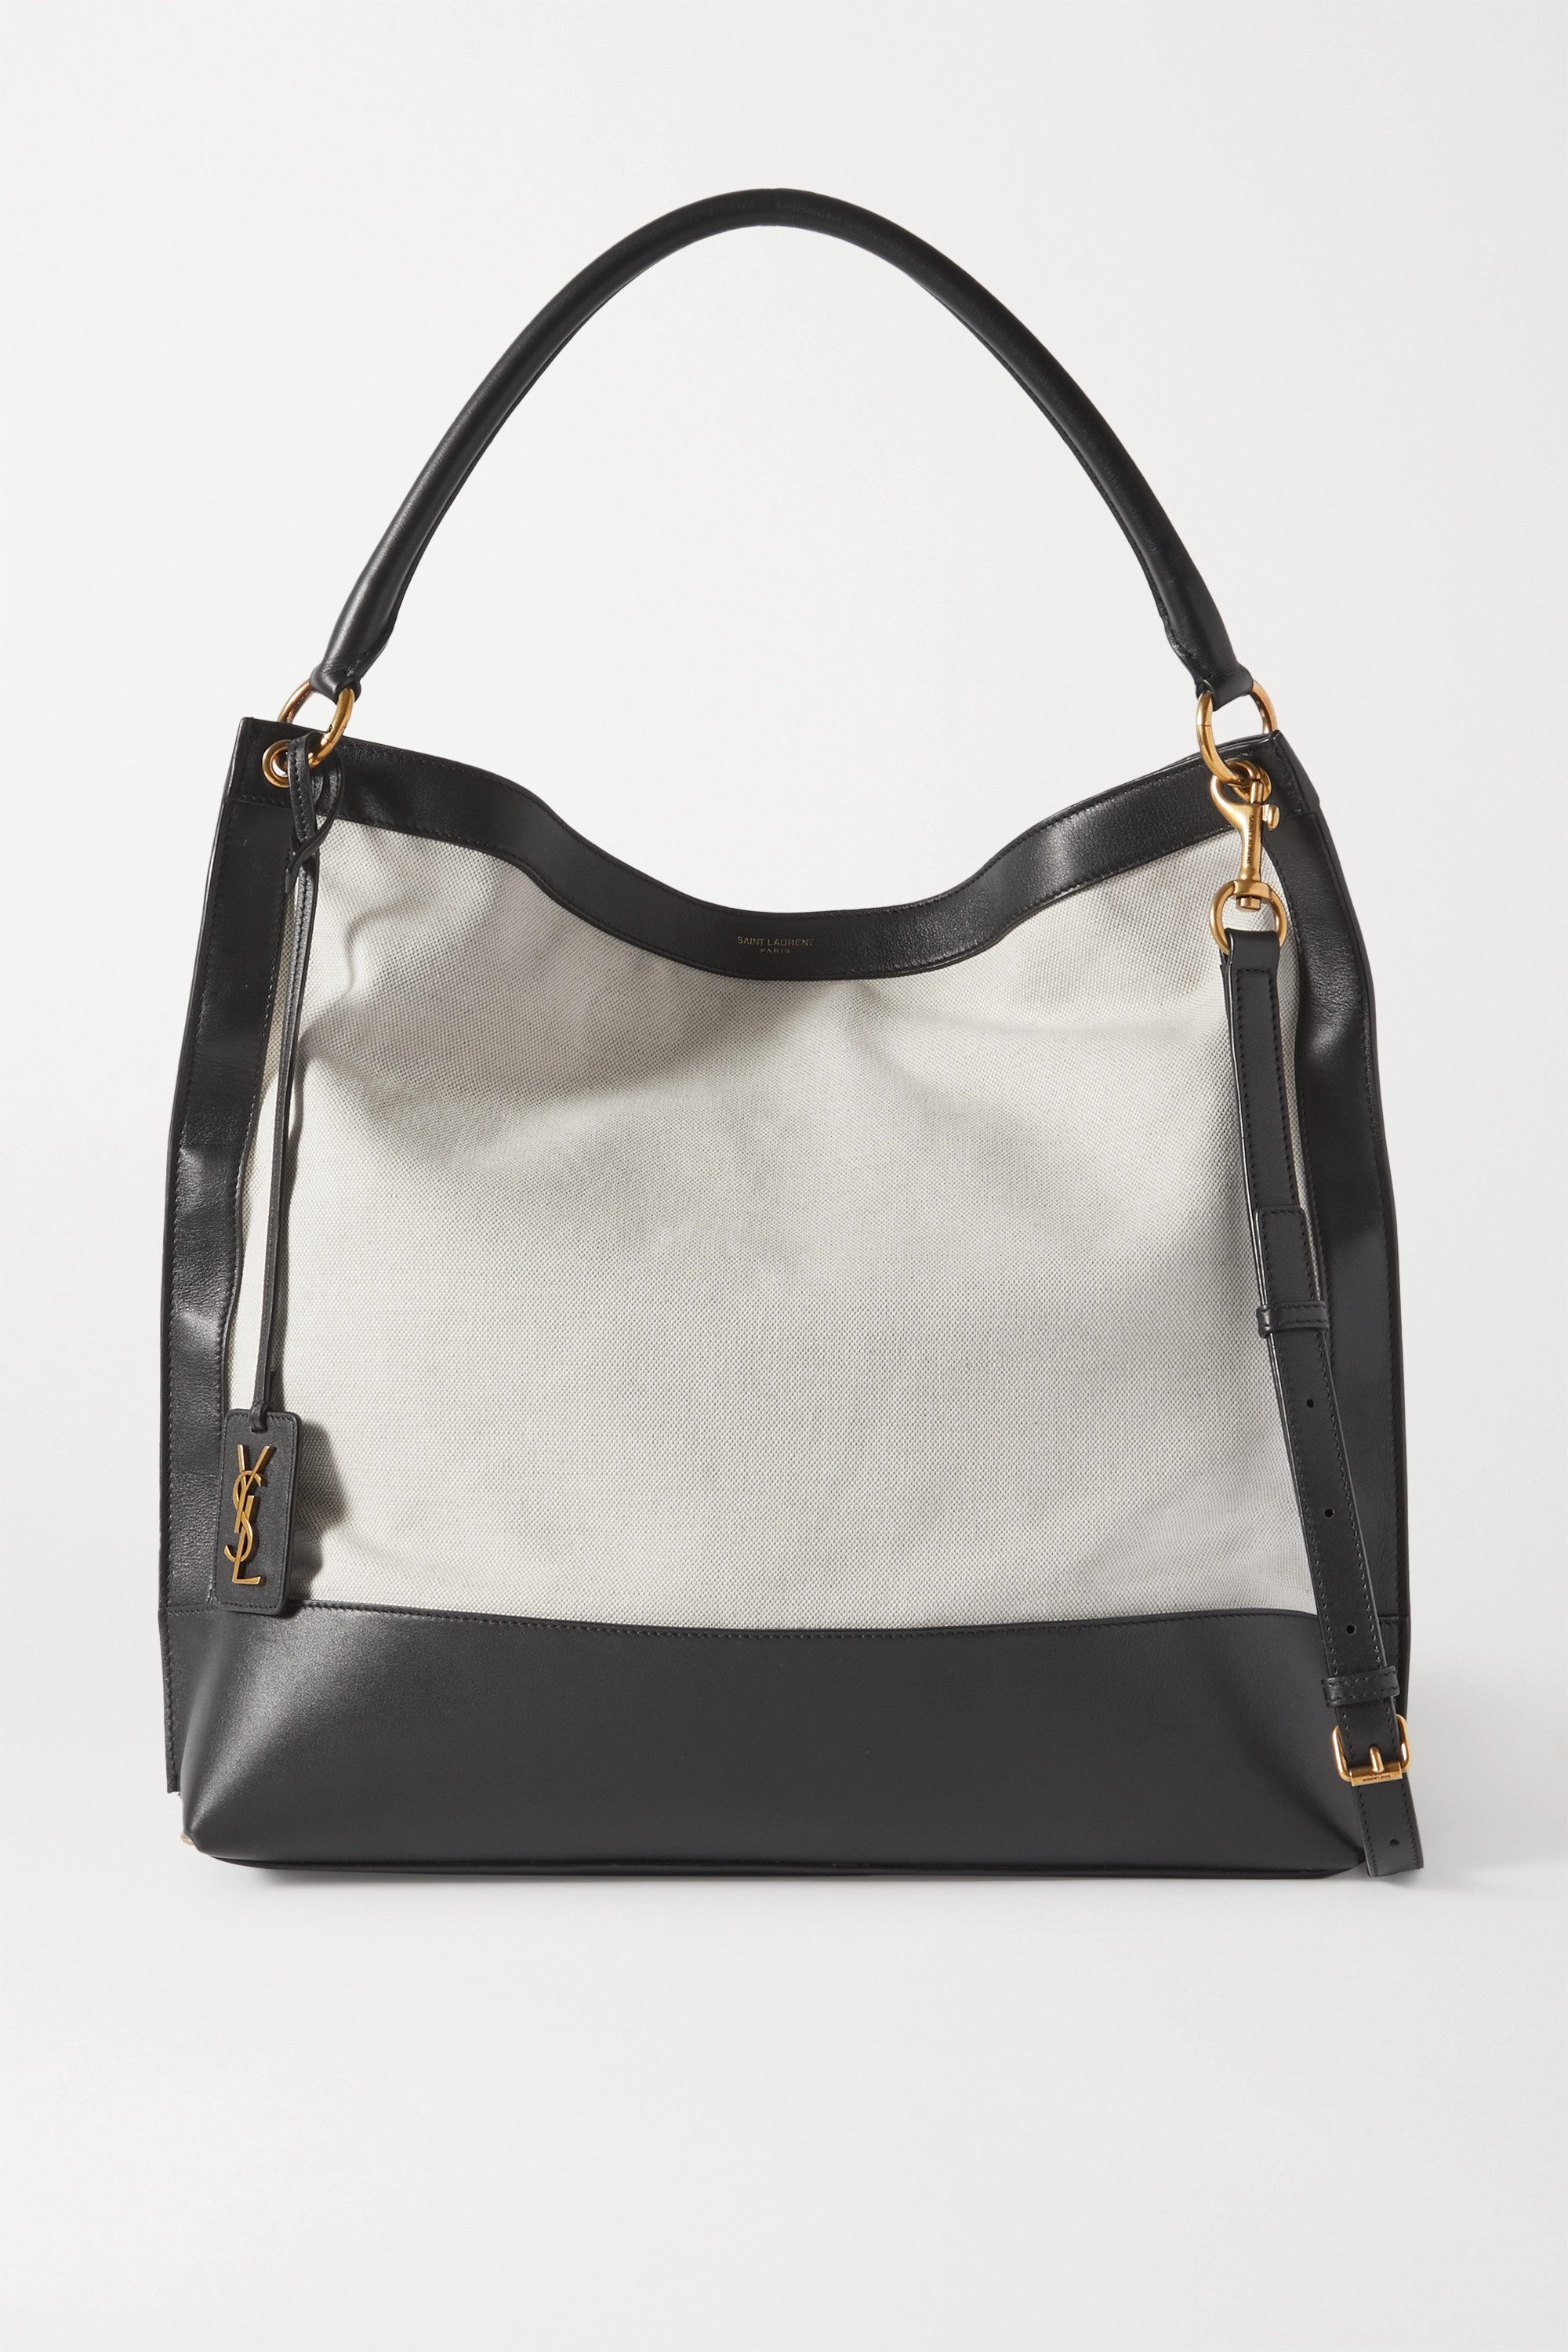 SAINT LAURENT Tag leather and canvas tote